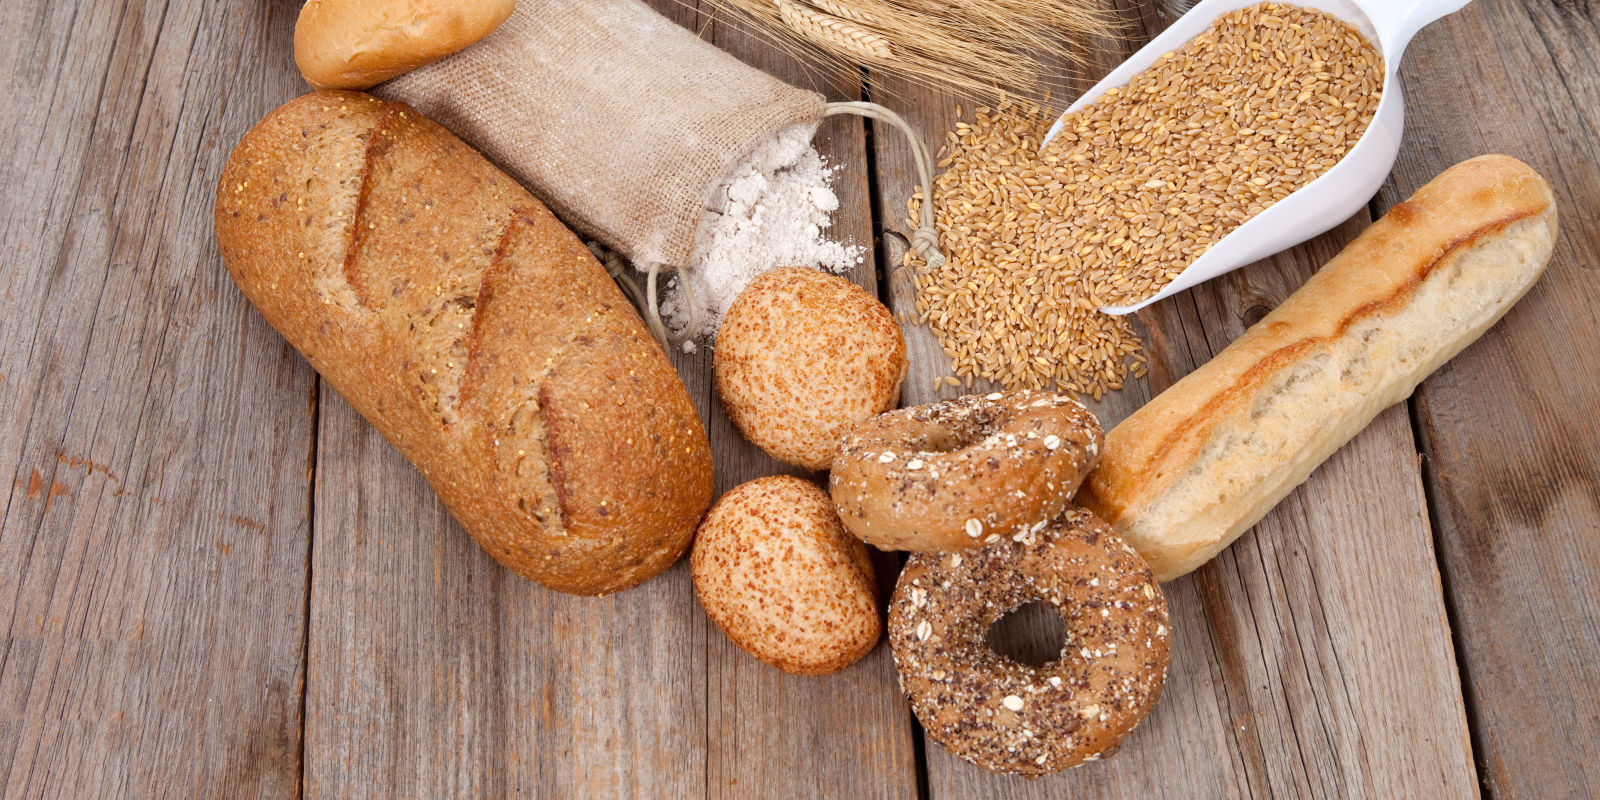 Whole Grains for Fat Loss